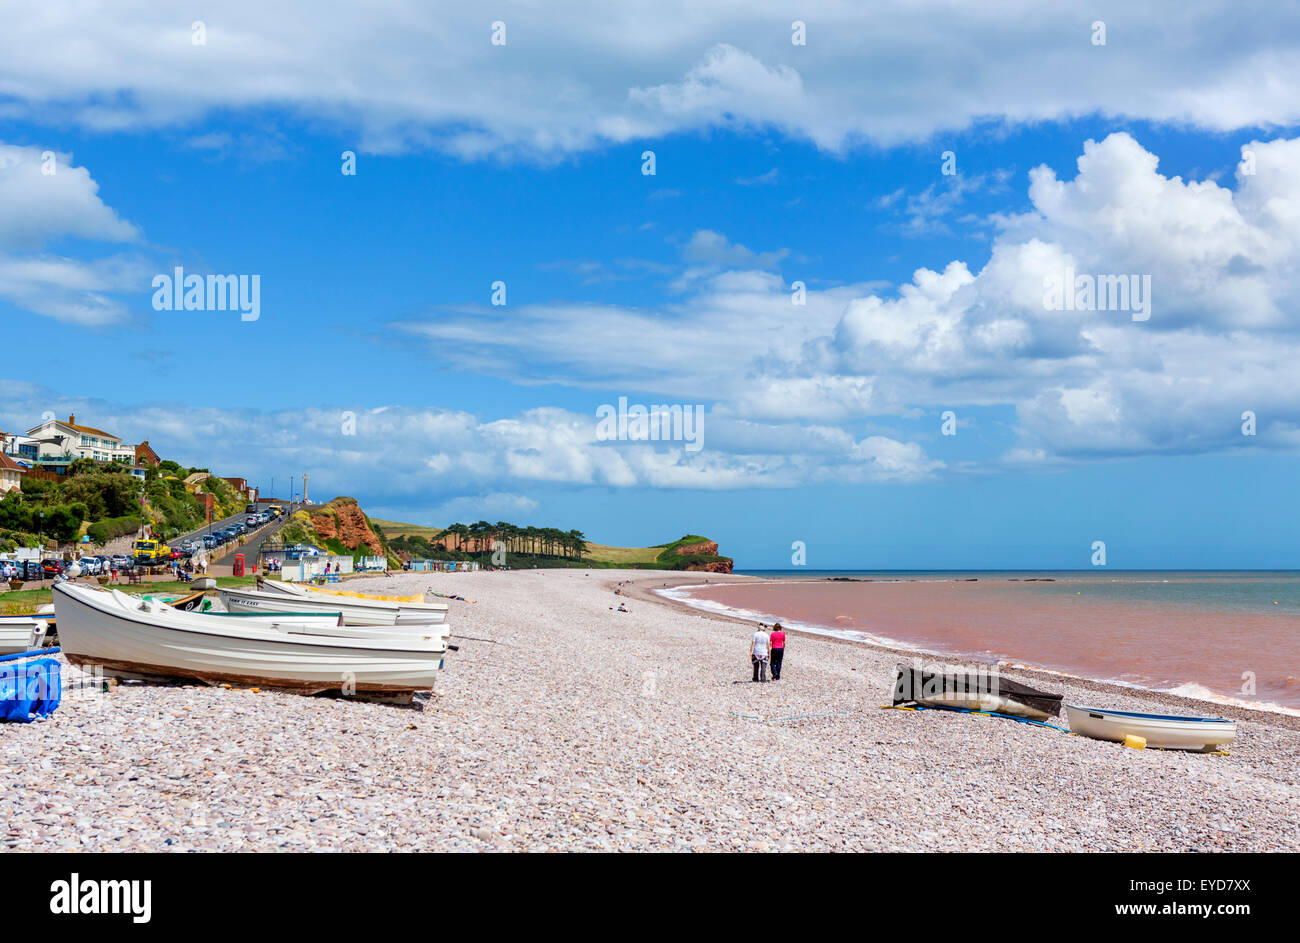 The pebble beach in Budleigh Salterton, Devon, England, UK - Stock Image